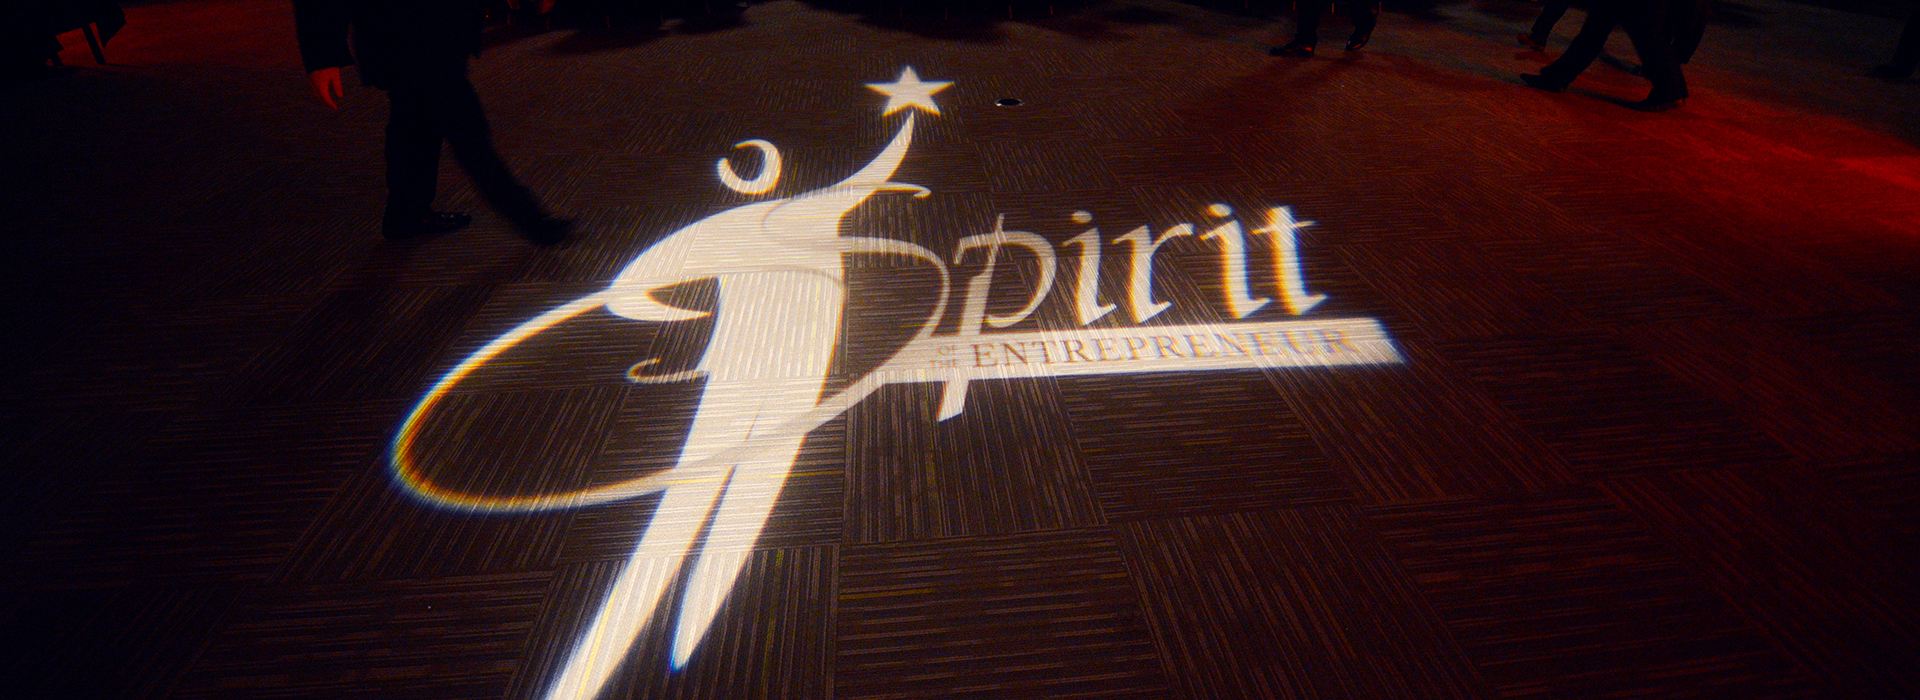 Spirit of the Entrepreneur finalists announced for the Nov. 14 gala event